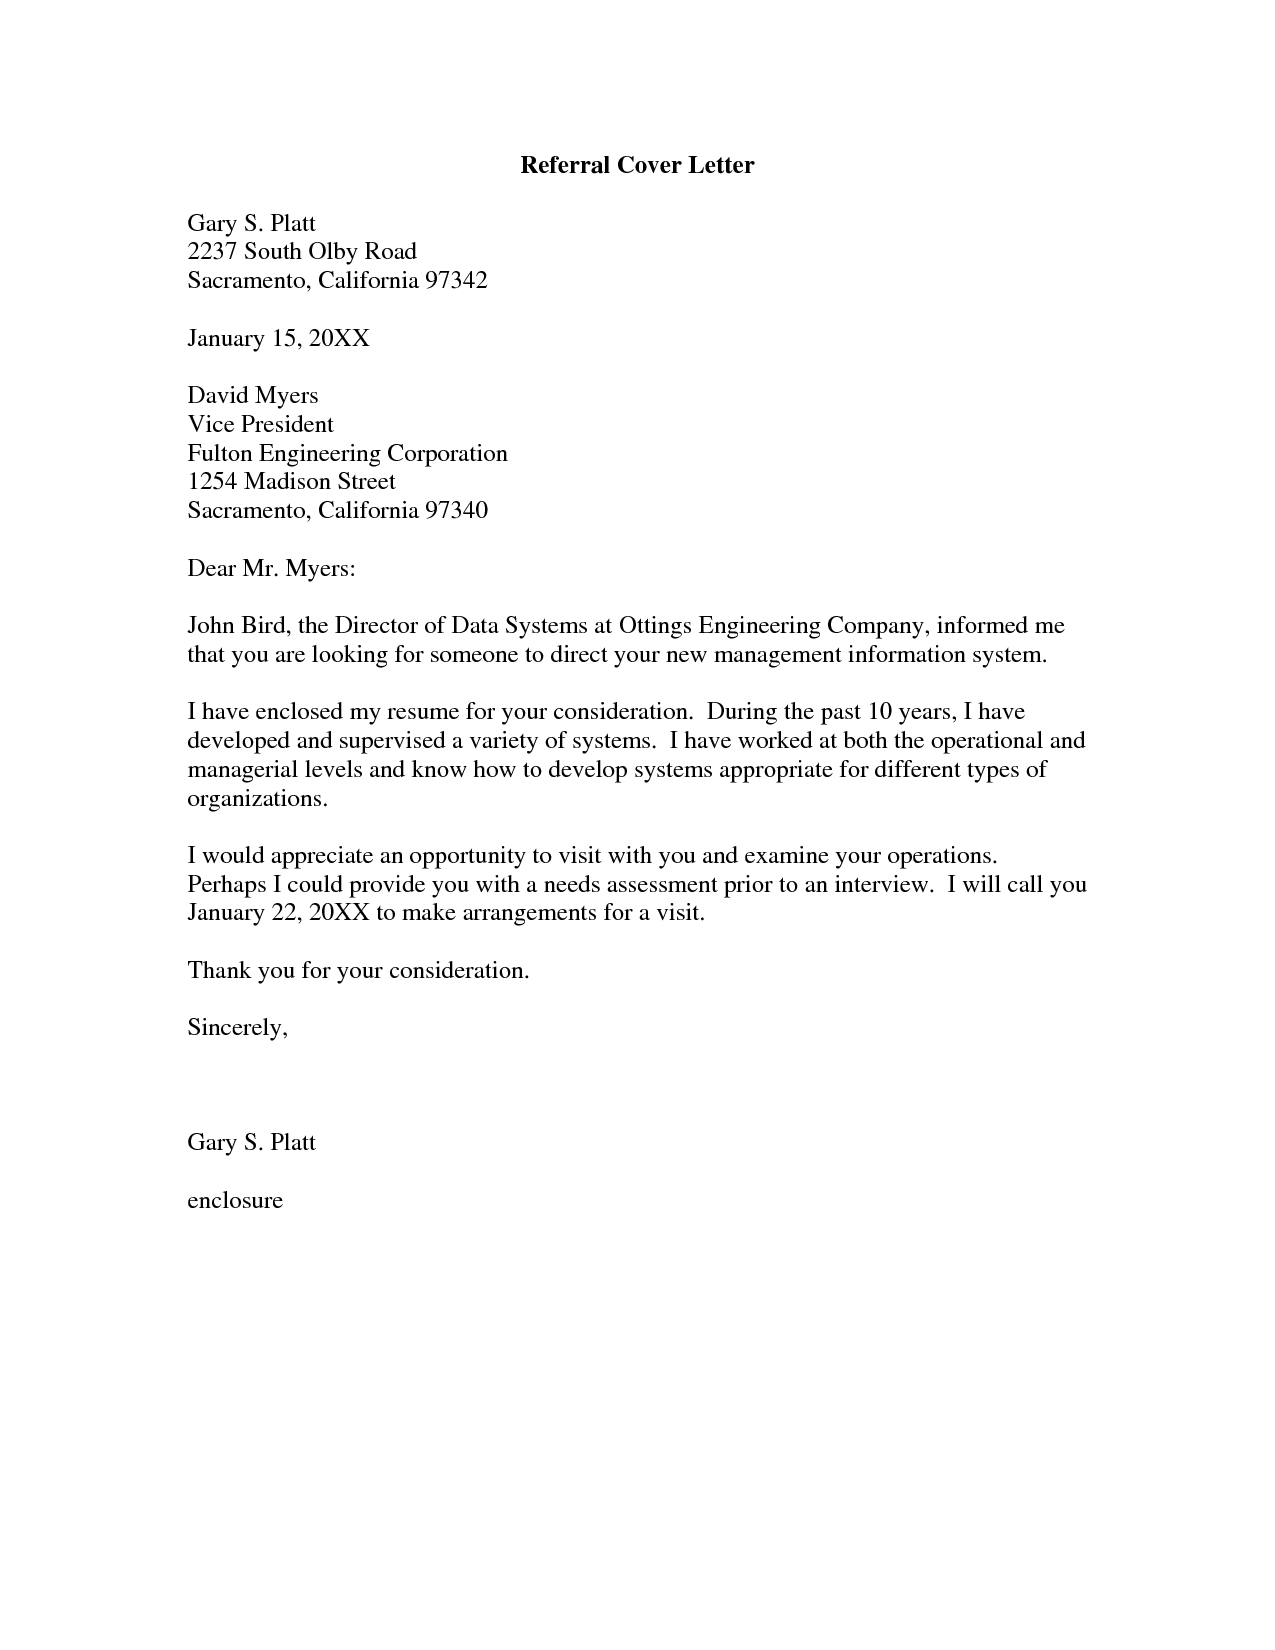 Referral Cover Letter Cover Letter Pinterest